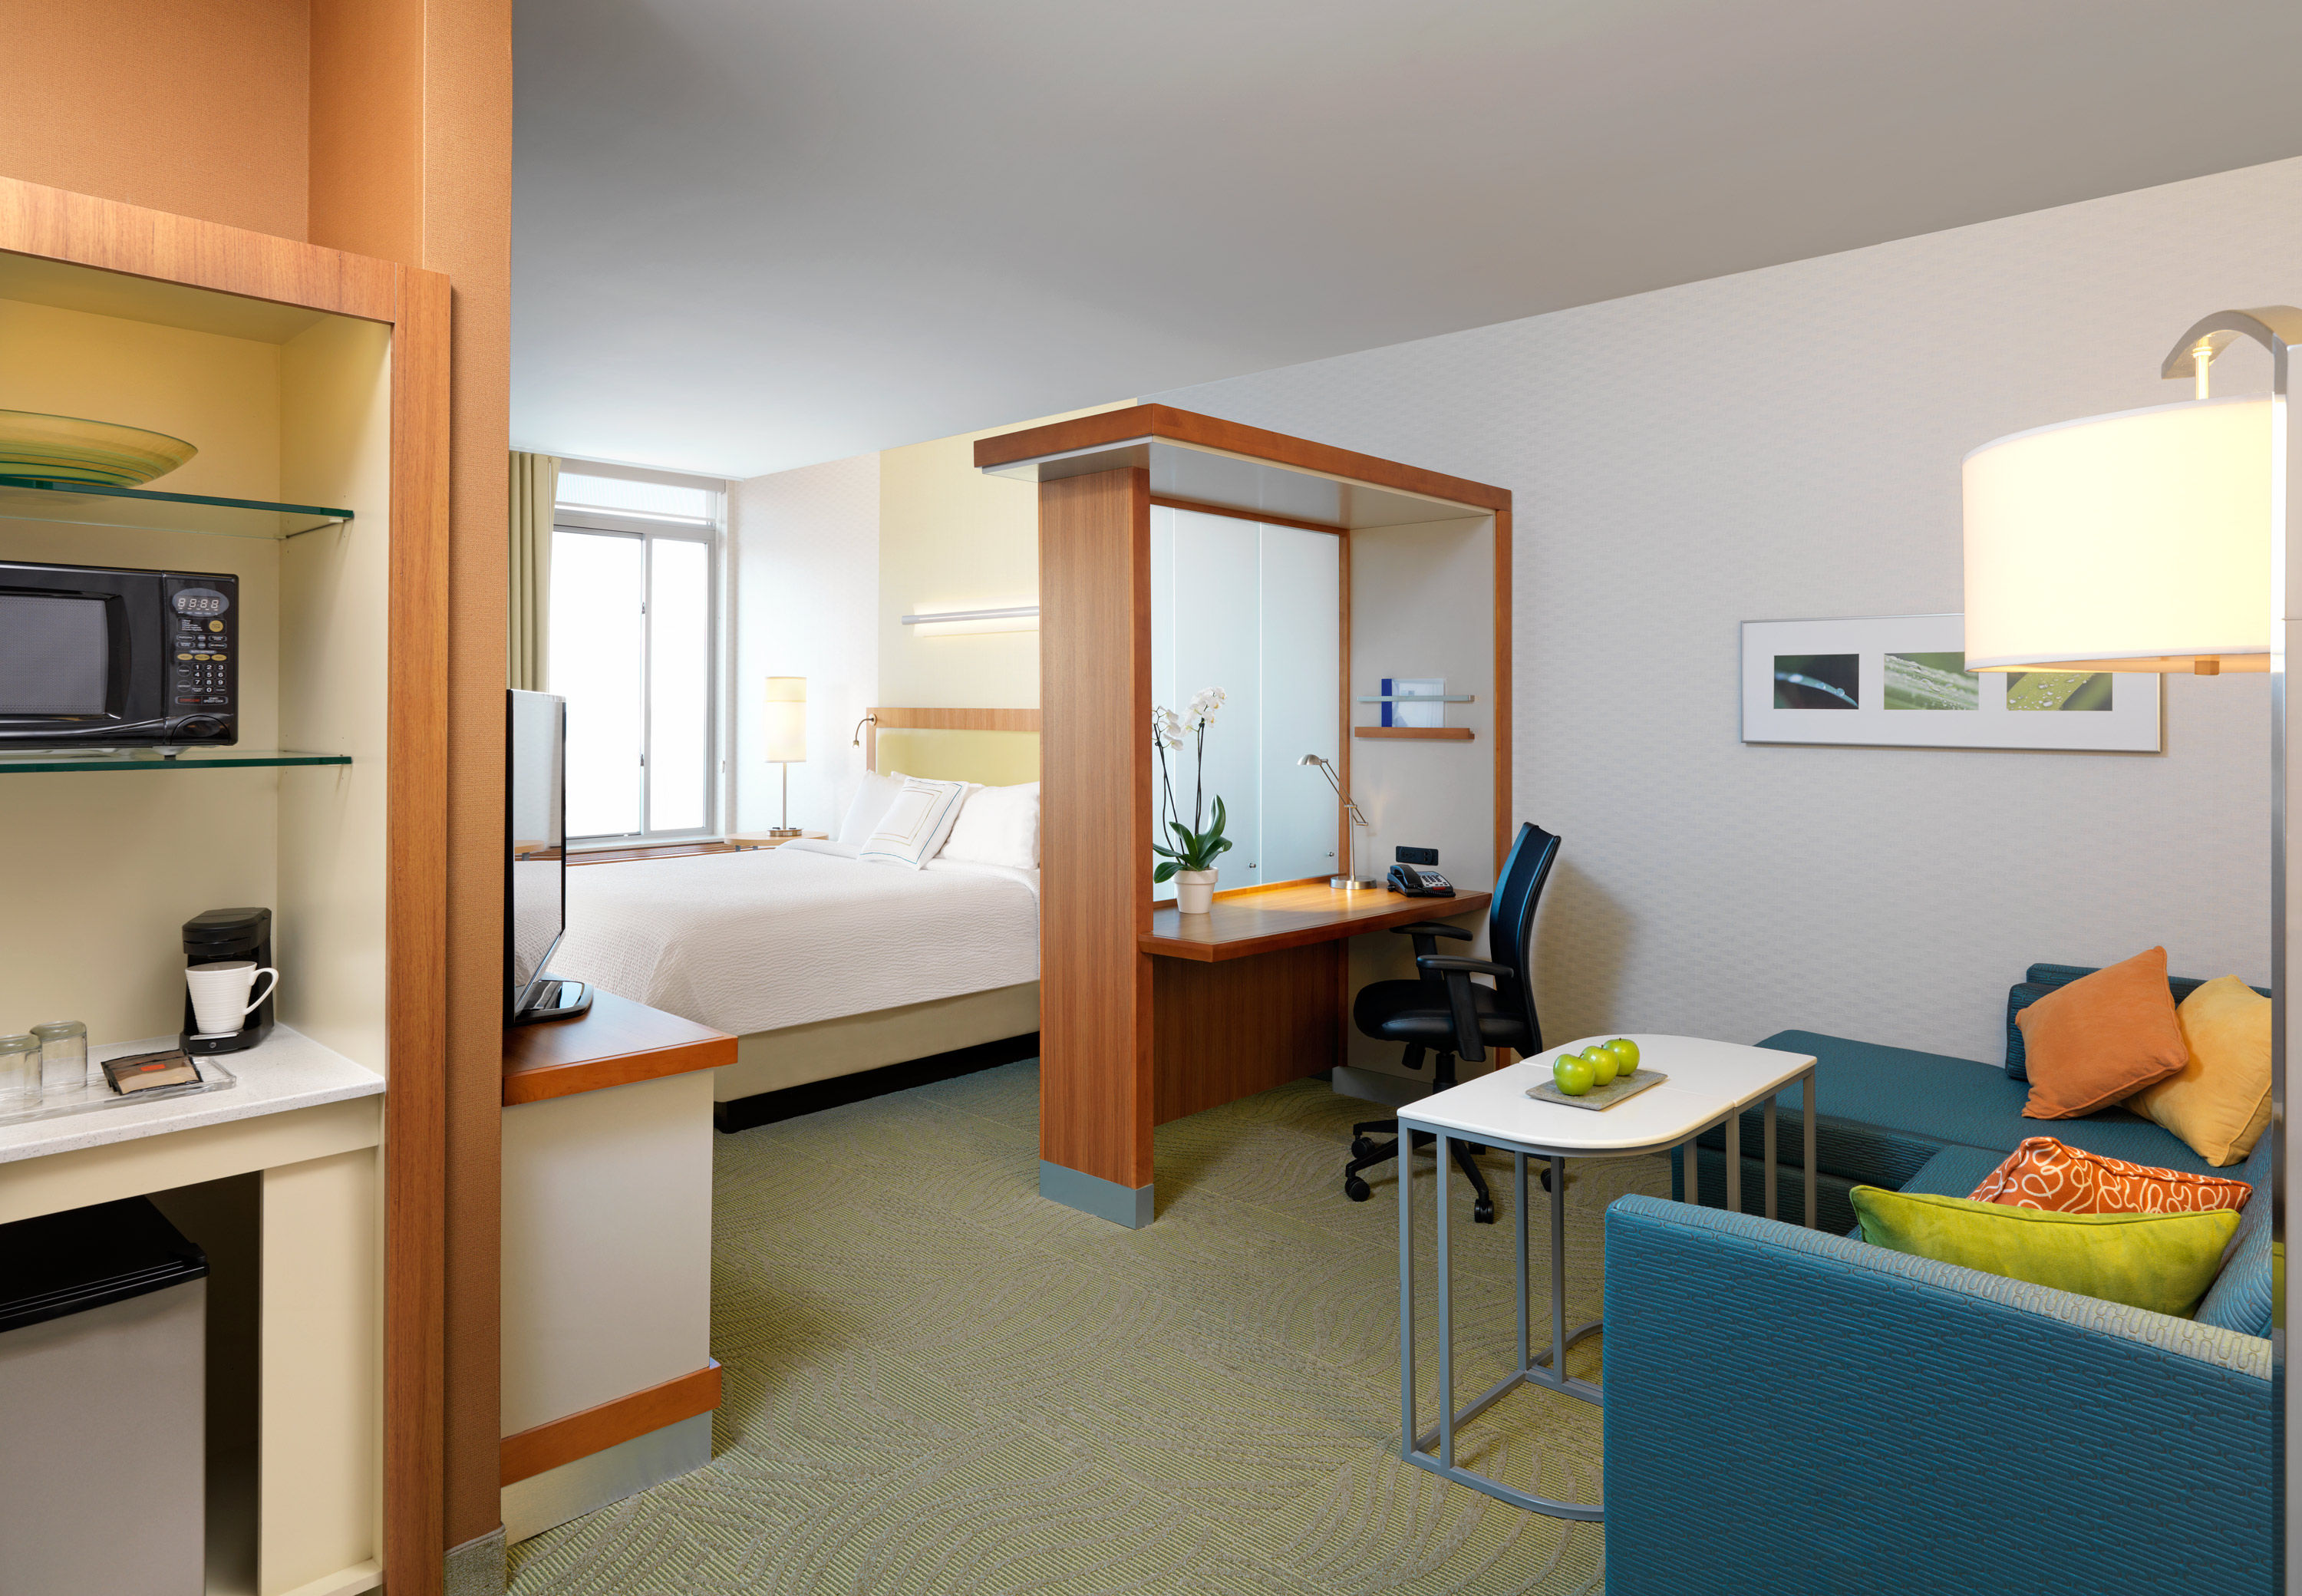 SpringHill Suites by Marriott Buffalo Airport image 11